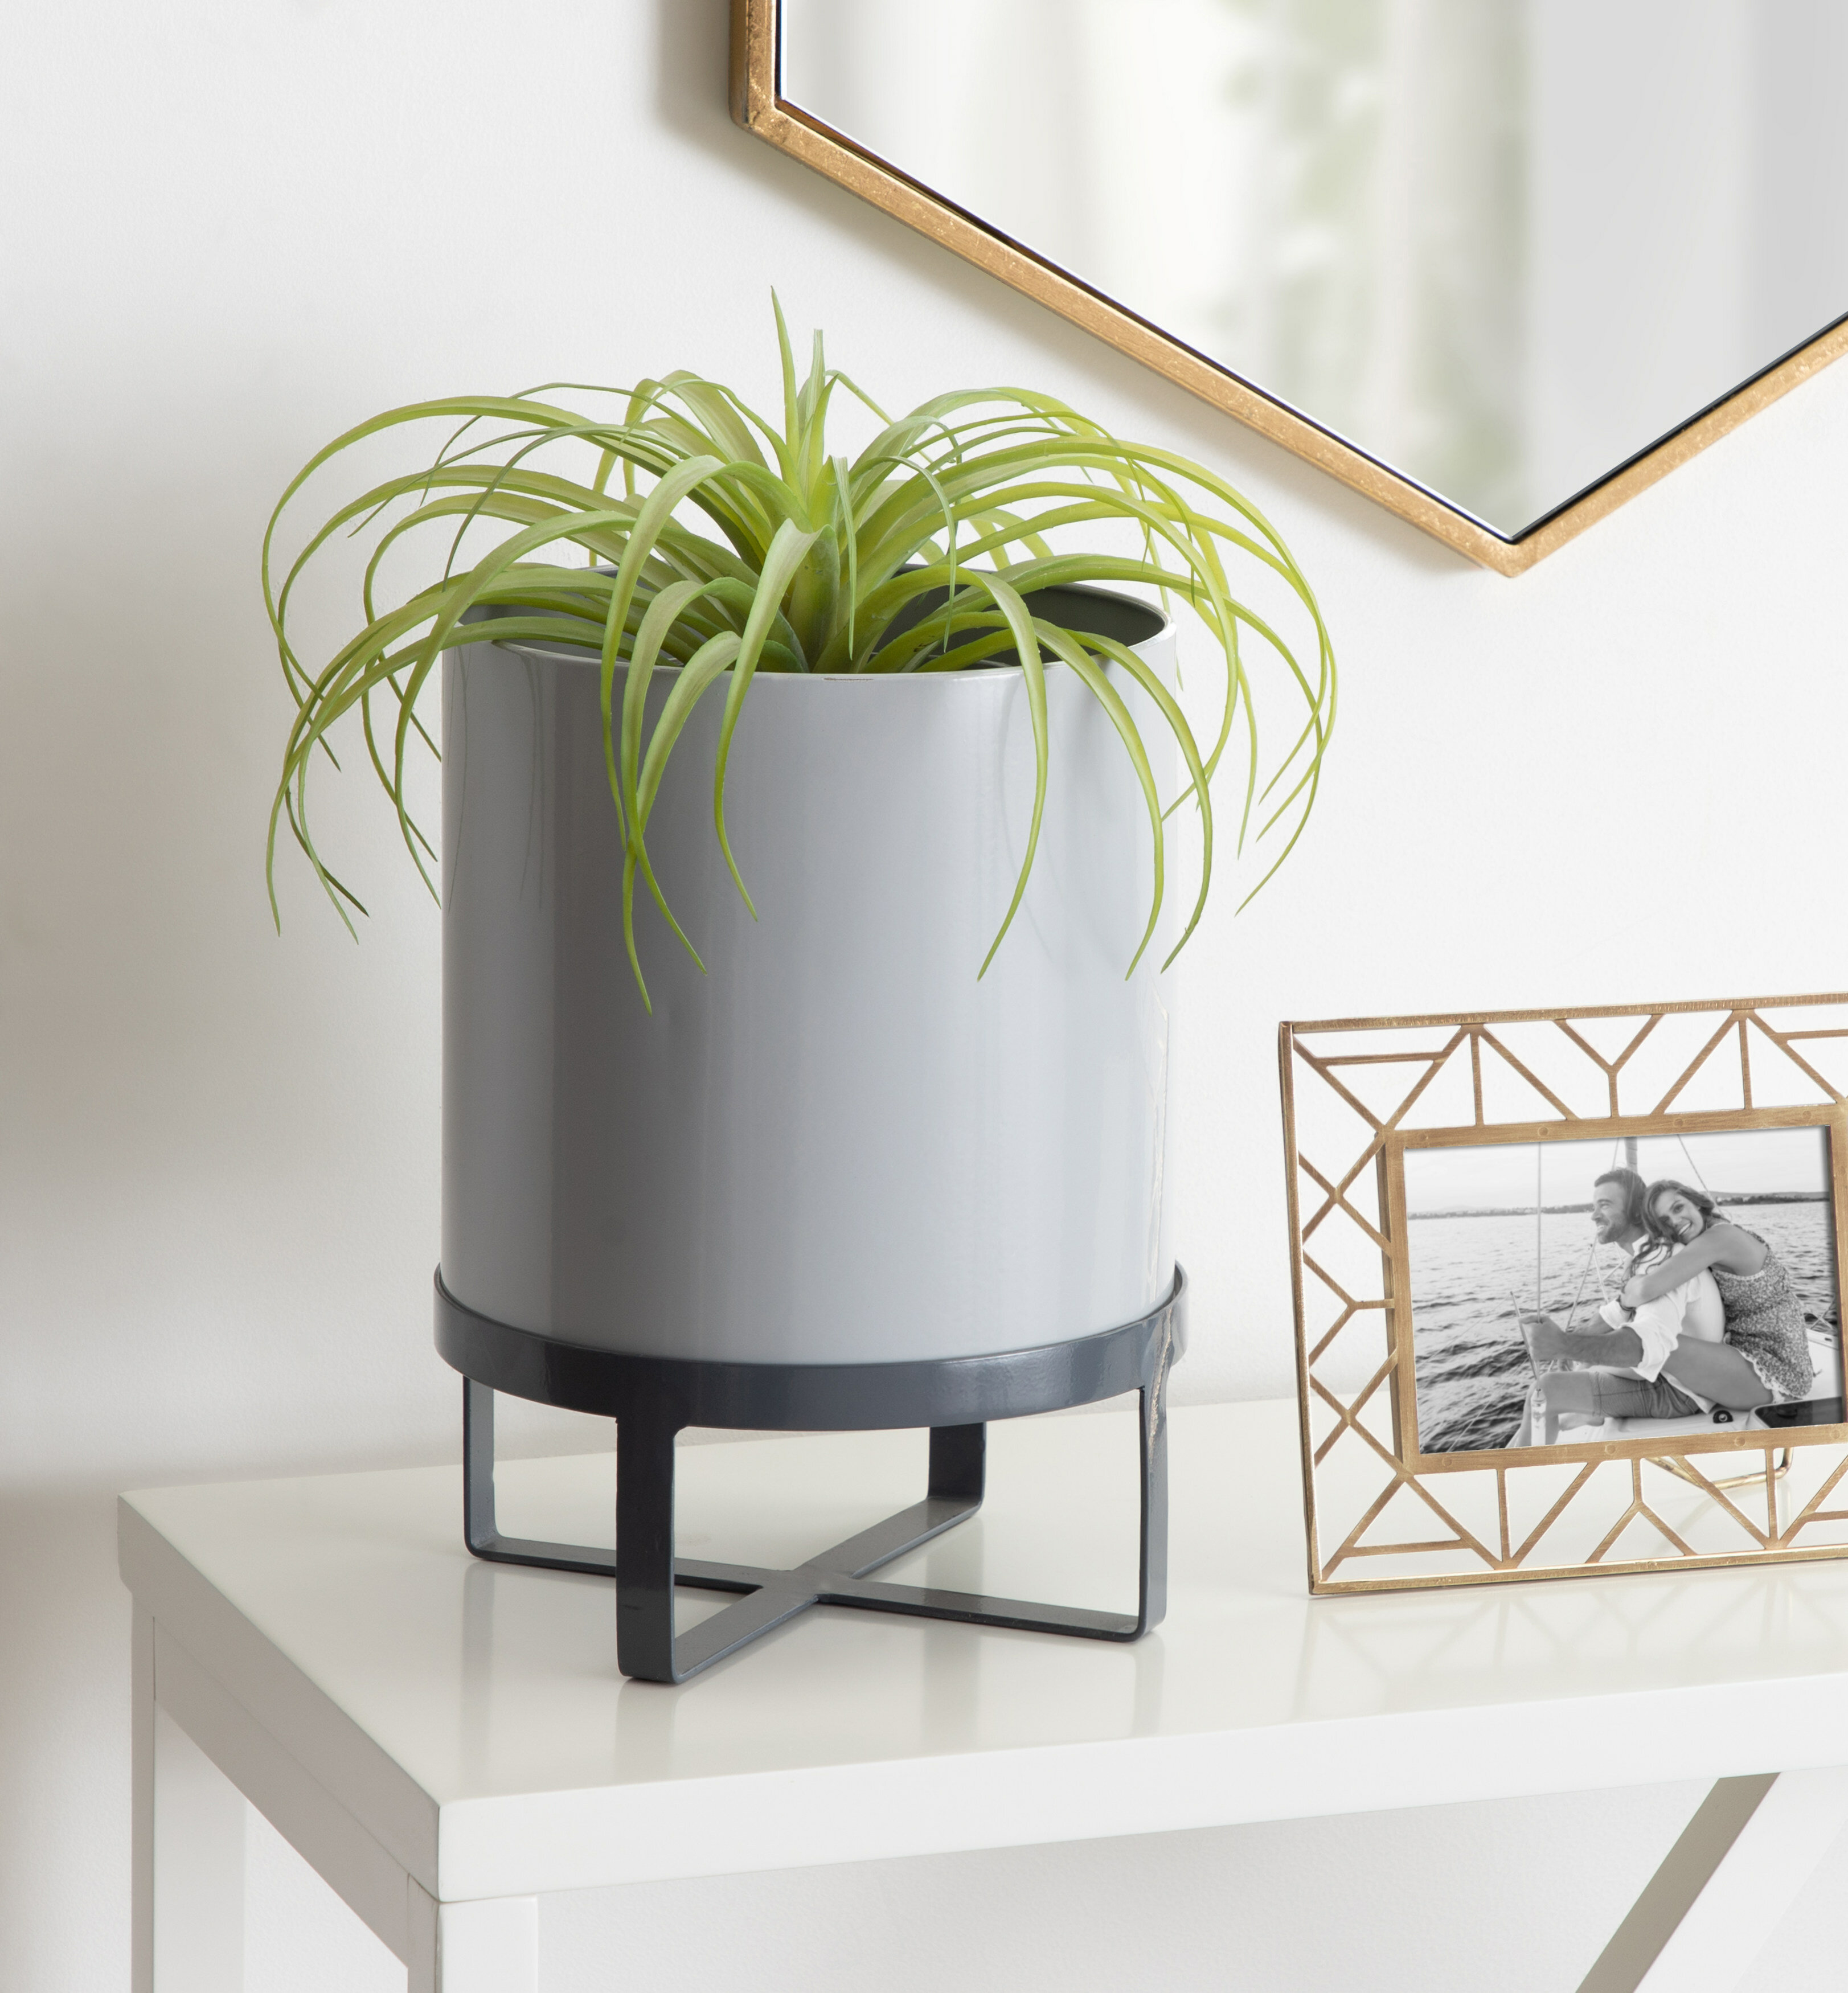 Wrought Studio Keithley Modern Two Tone Metal Plant Stand And Pot Set For Decorative Indoor Houseplants Grey Reviews Wayfair Ca